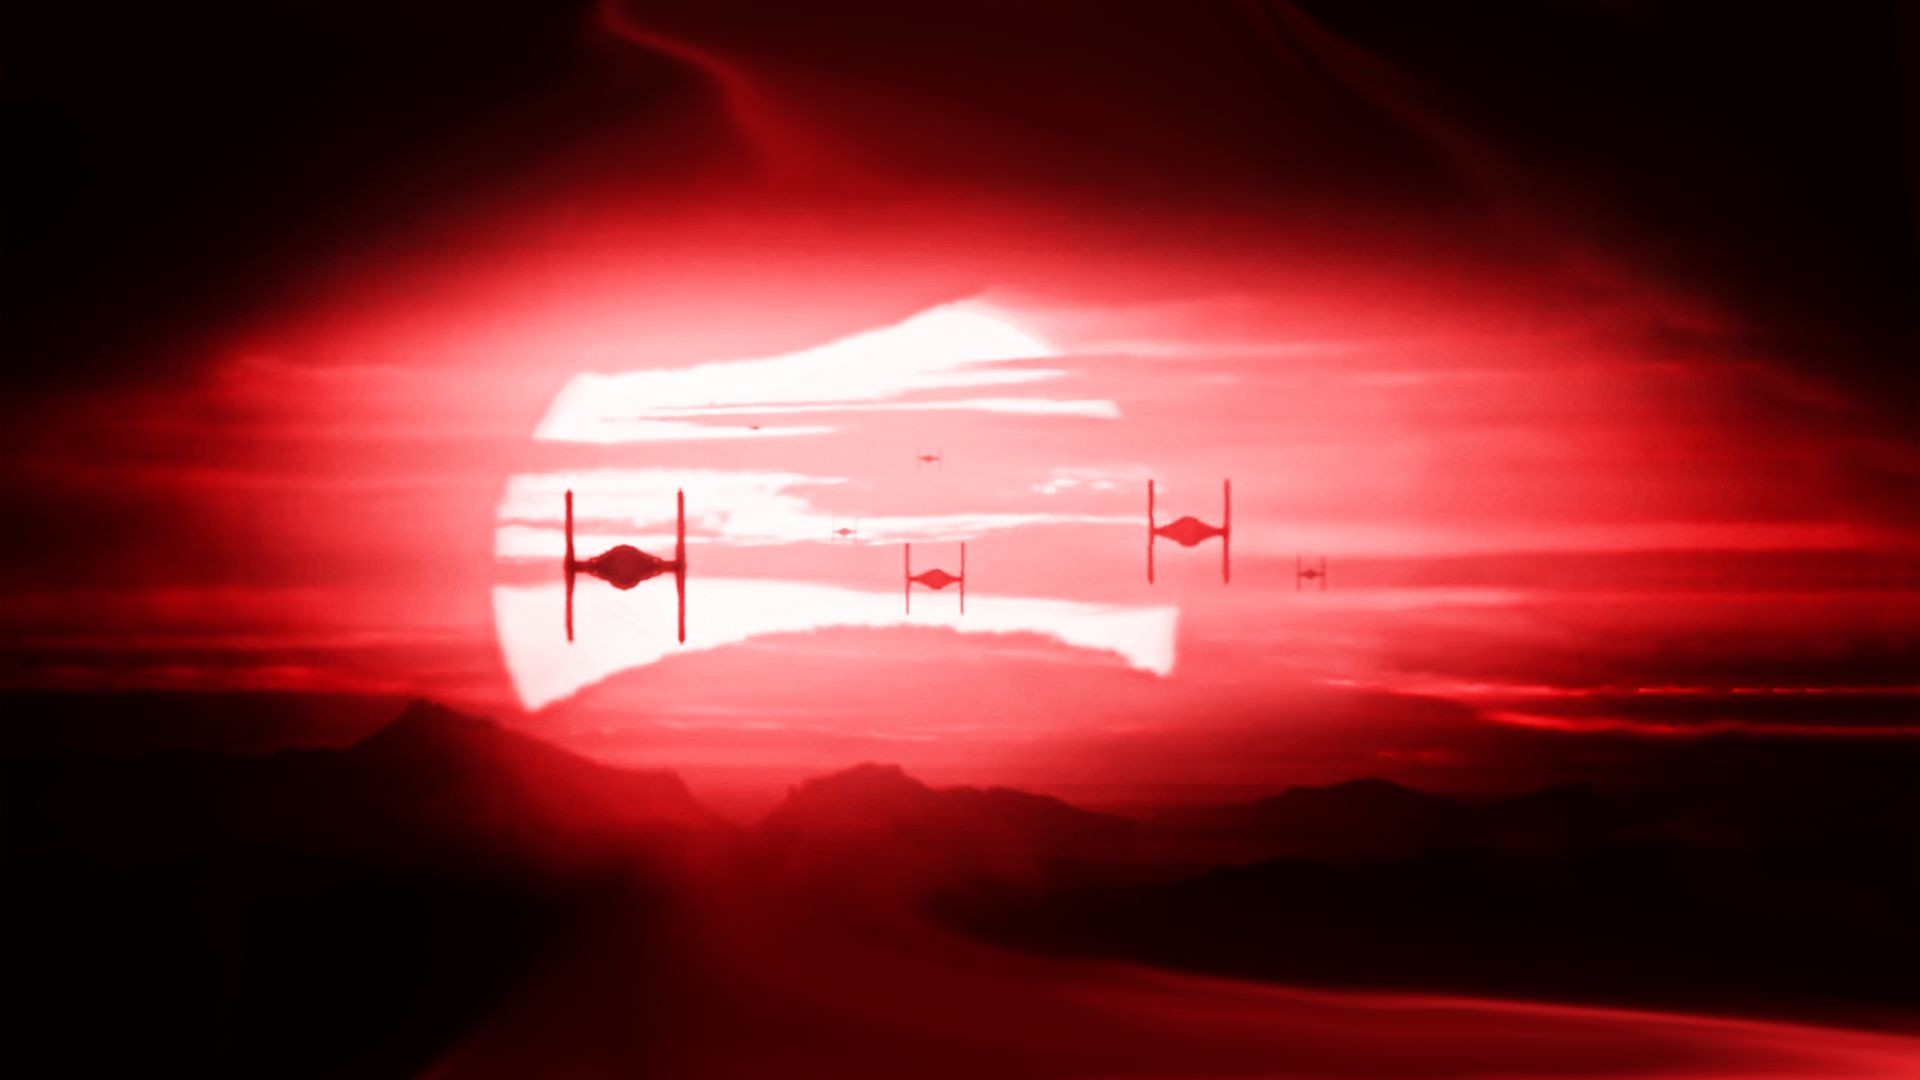 Star Wars The Force Awakens TIE Fighters Backgrounds